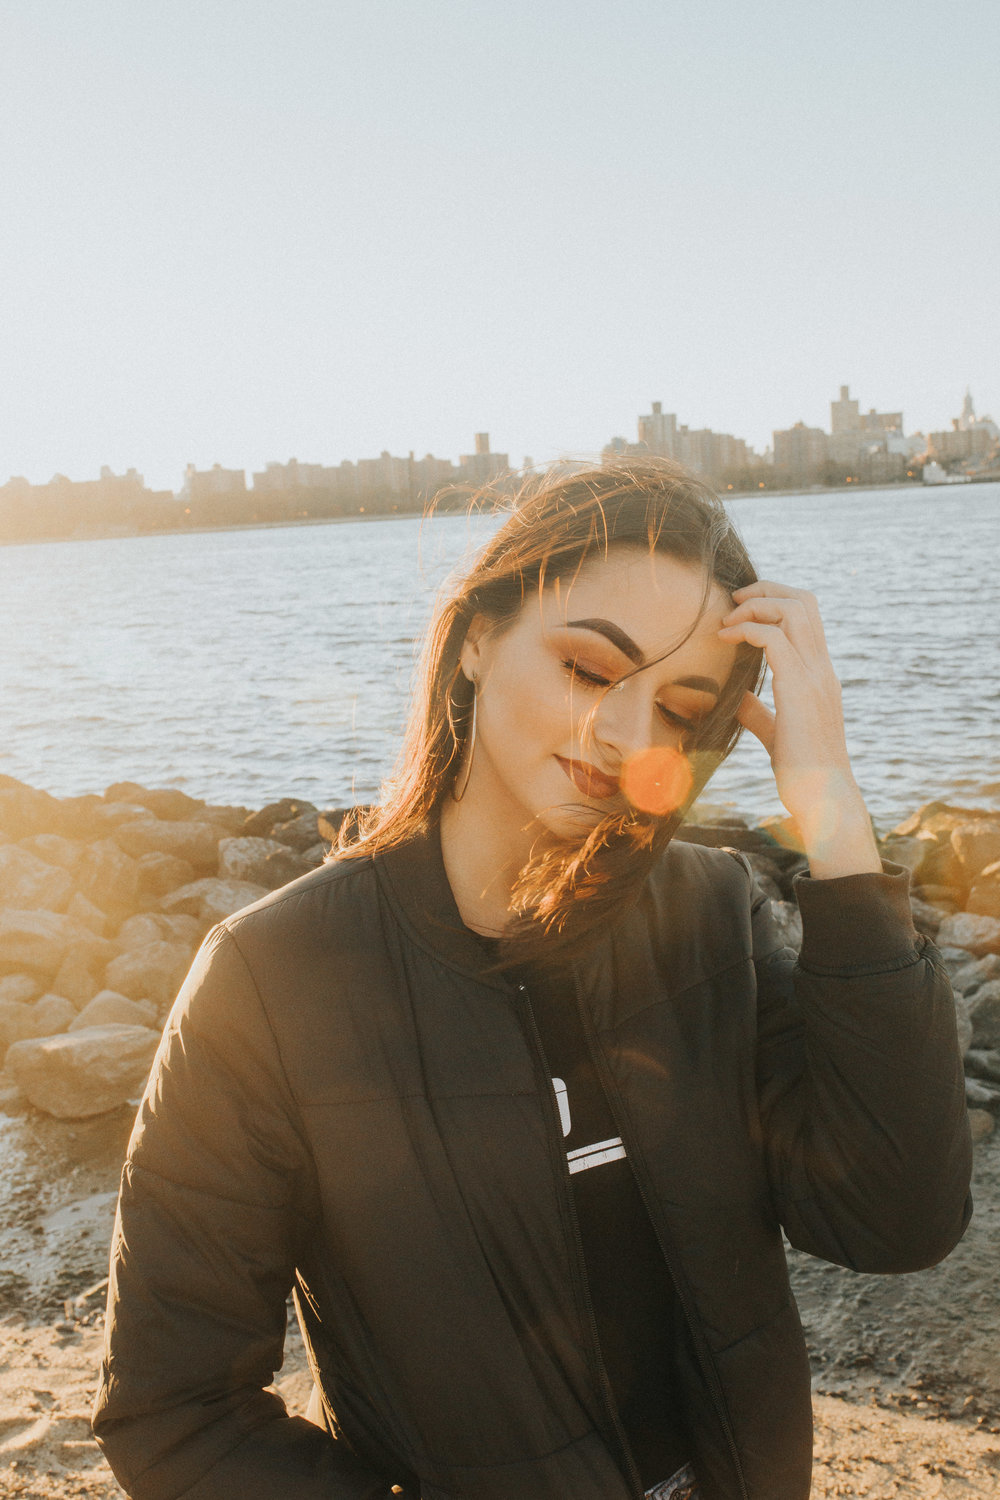 Lindsay Paulen NYC New York Williamsburg Brooklyn Best friends photoshoot waterfront cityscape hipster lxc presets